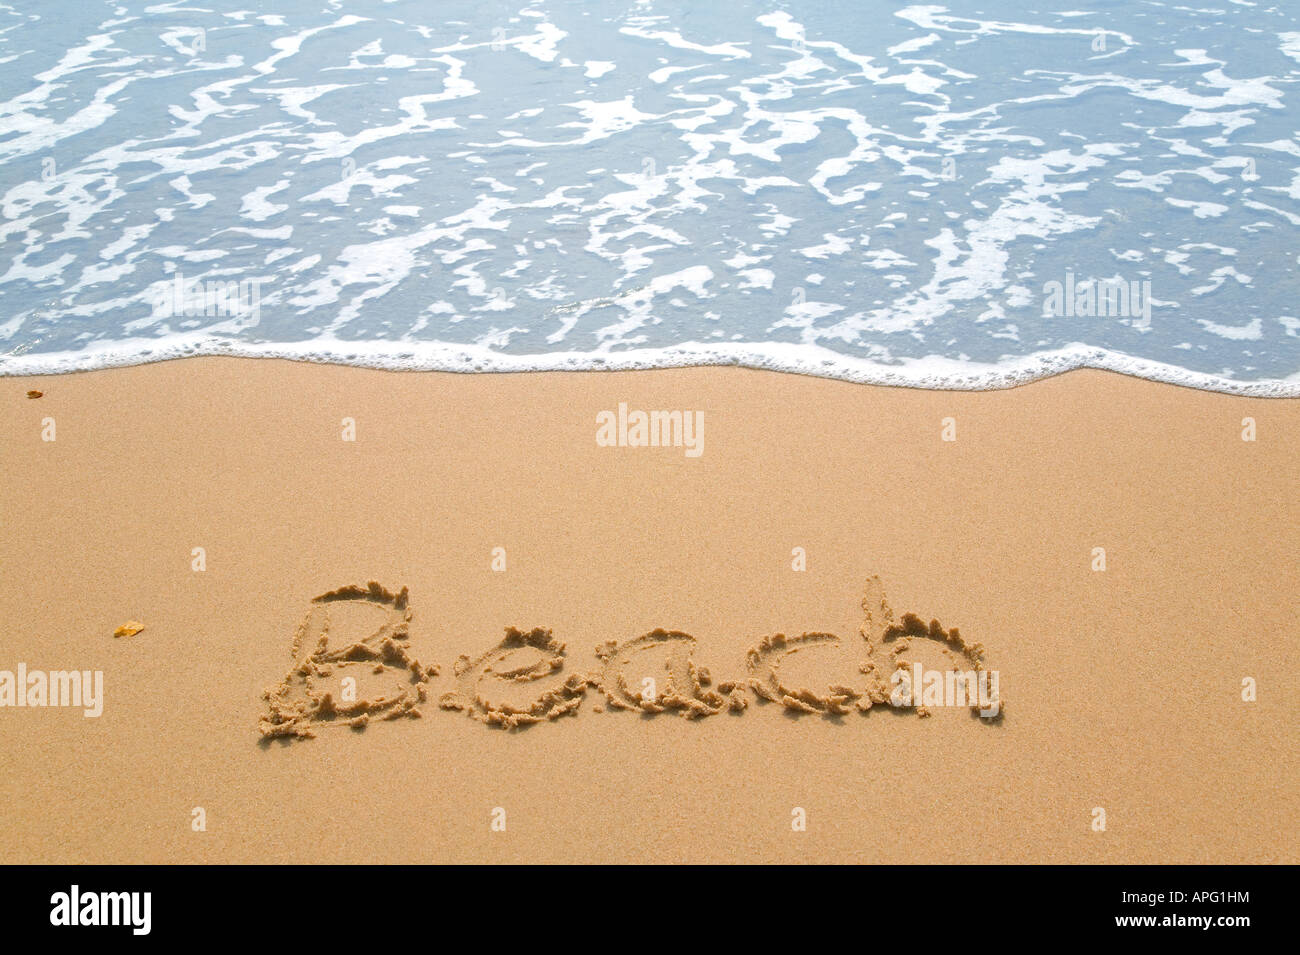 Beach written on a golden sandy beach next to the waters edge - Stock Image